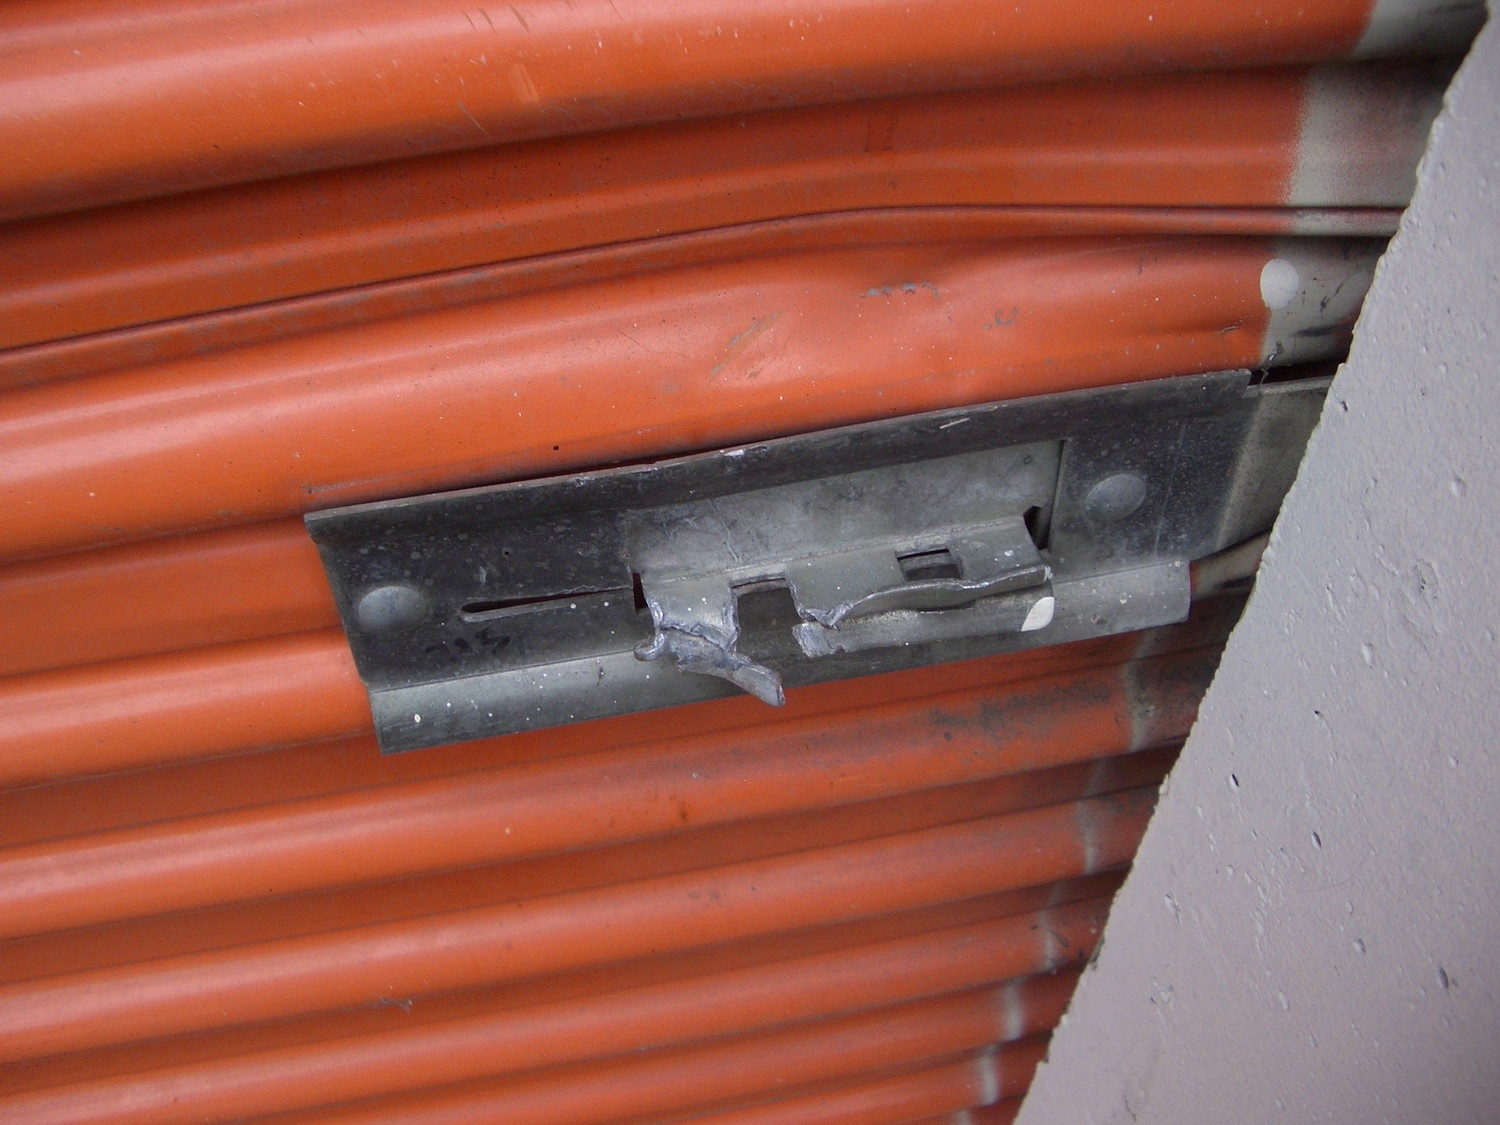 THE BROKEN STORAGE UNIT LOCK